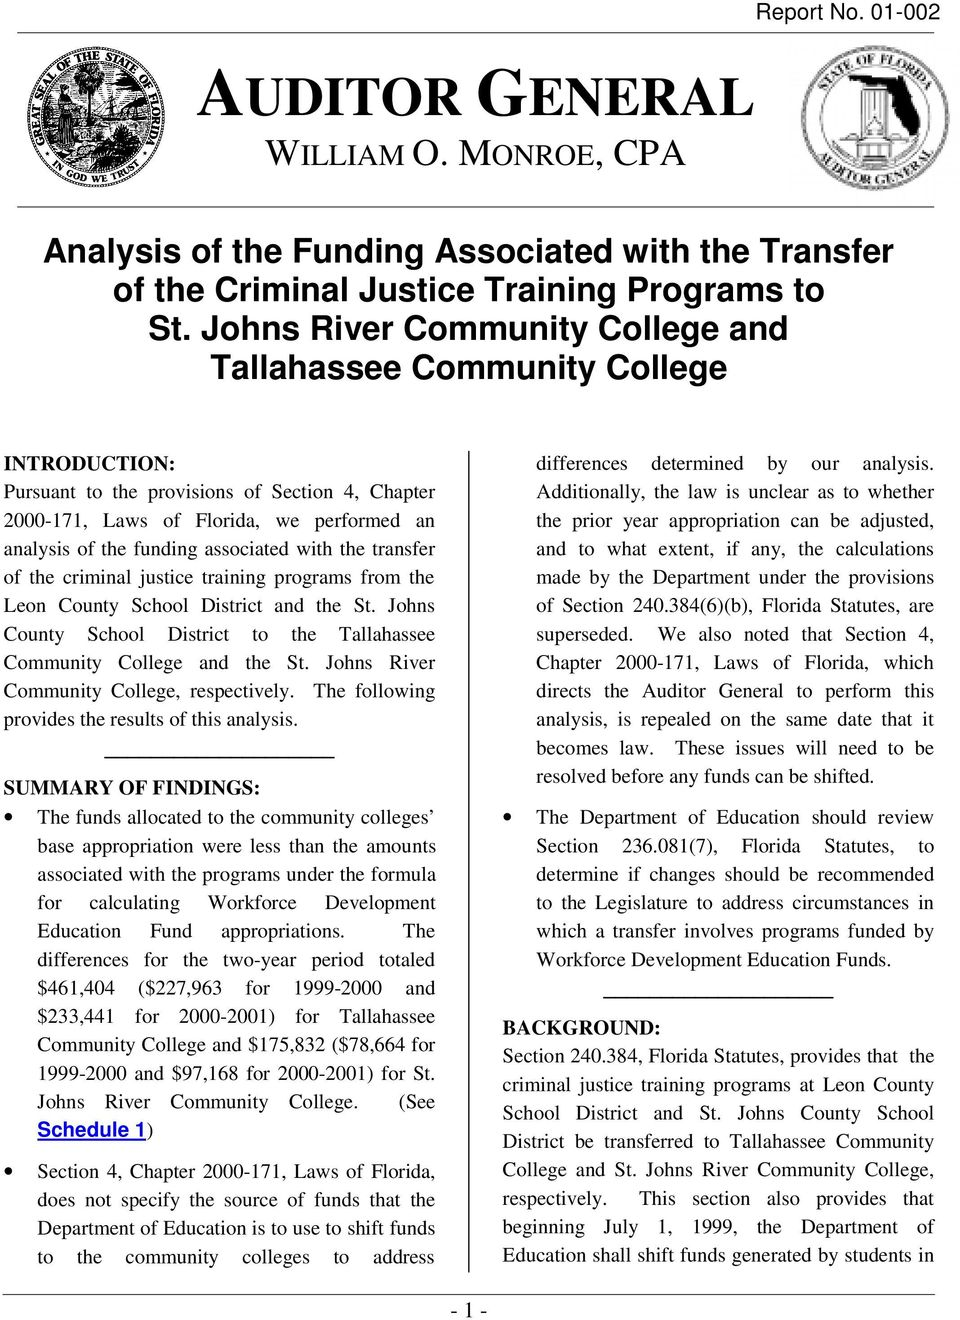 associated with the transfer of the criminal justice training programs from the Leon County School District and the St. Johns County School District to the Tallahassee Community College and the St.